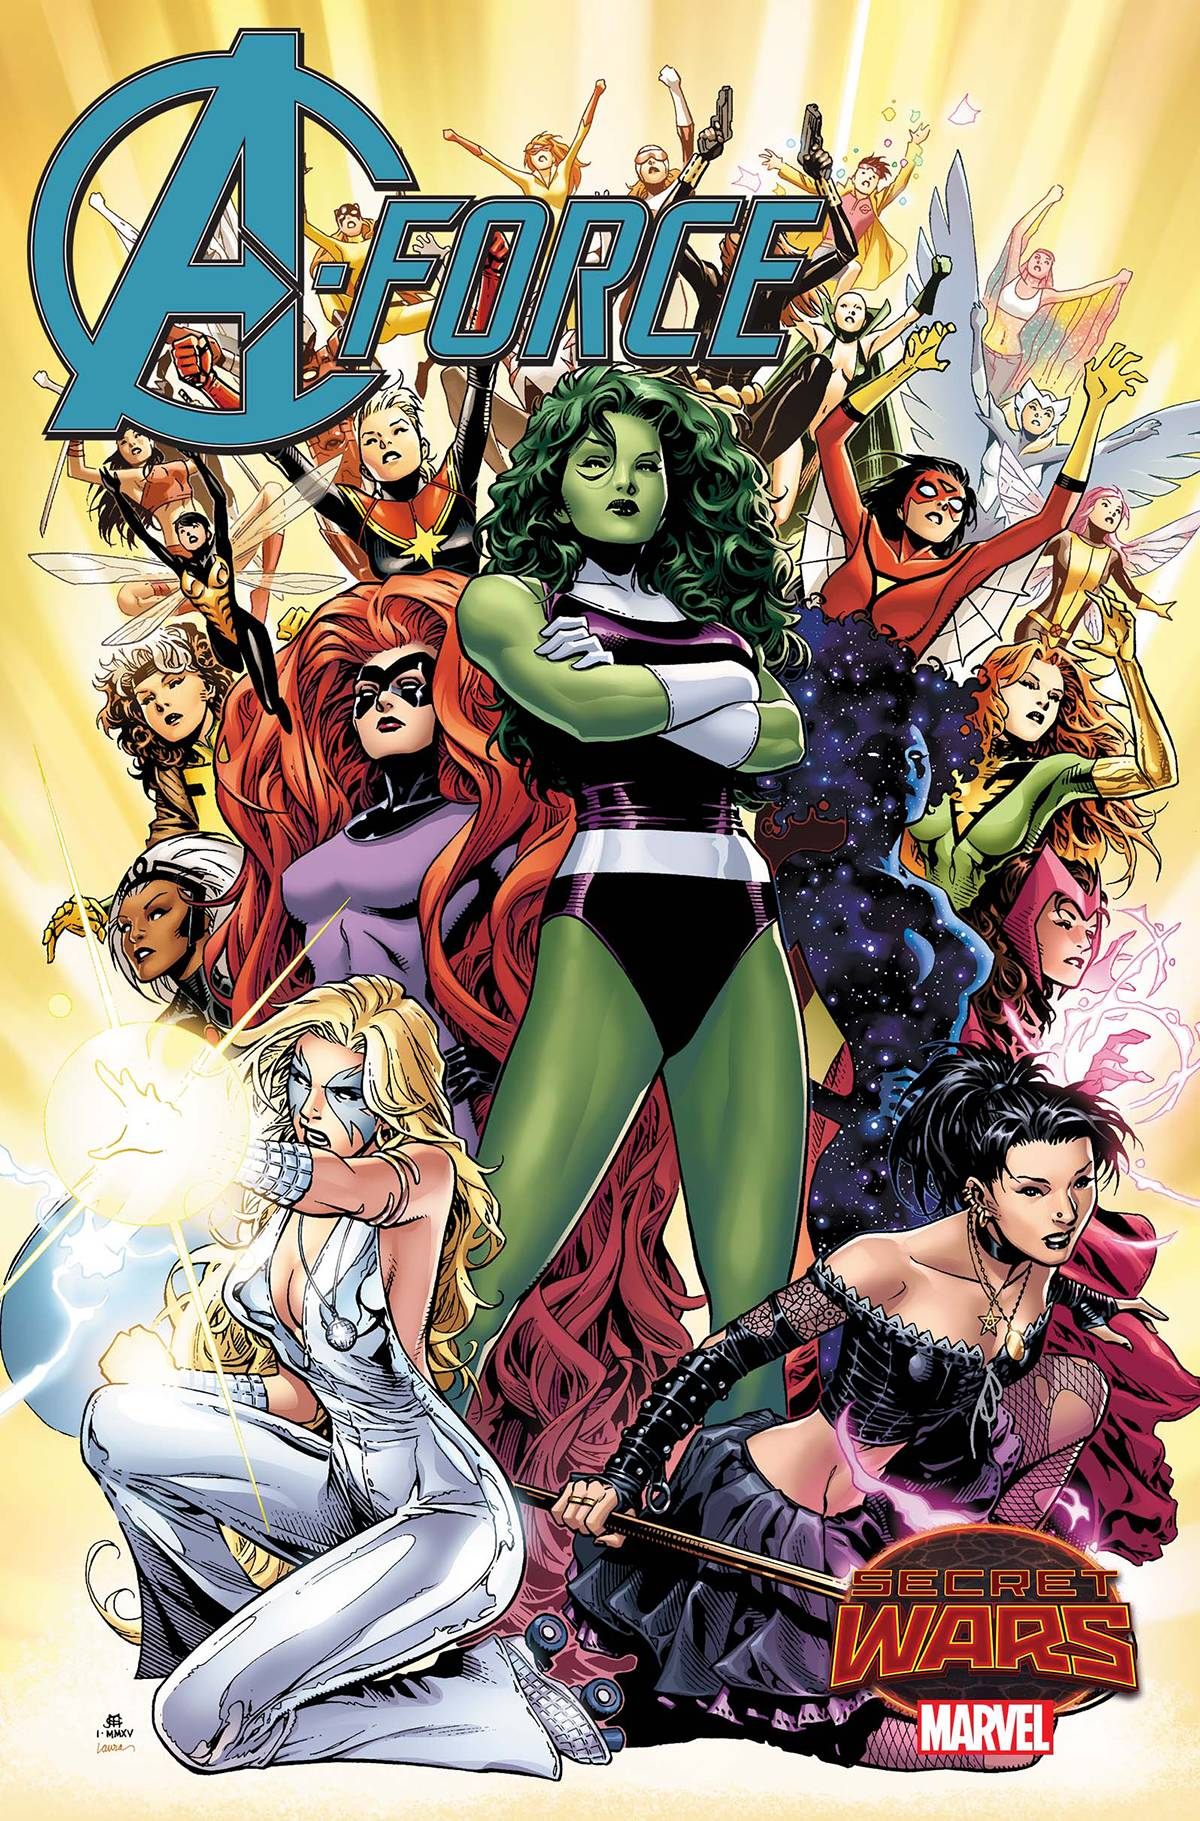 REVIEW: A-Force #1 - Girls Run The World